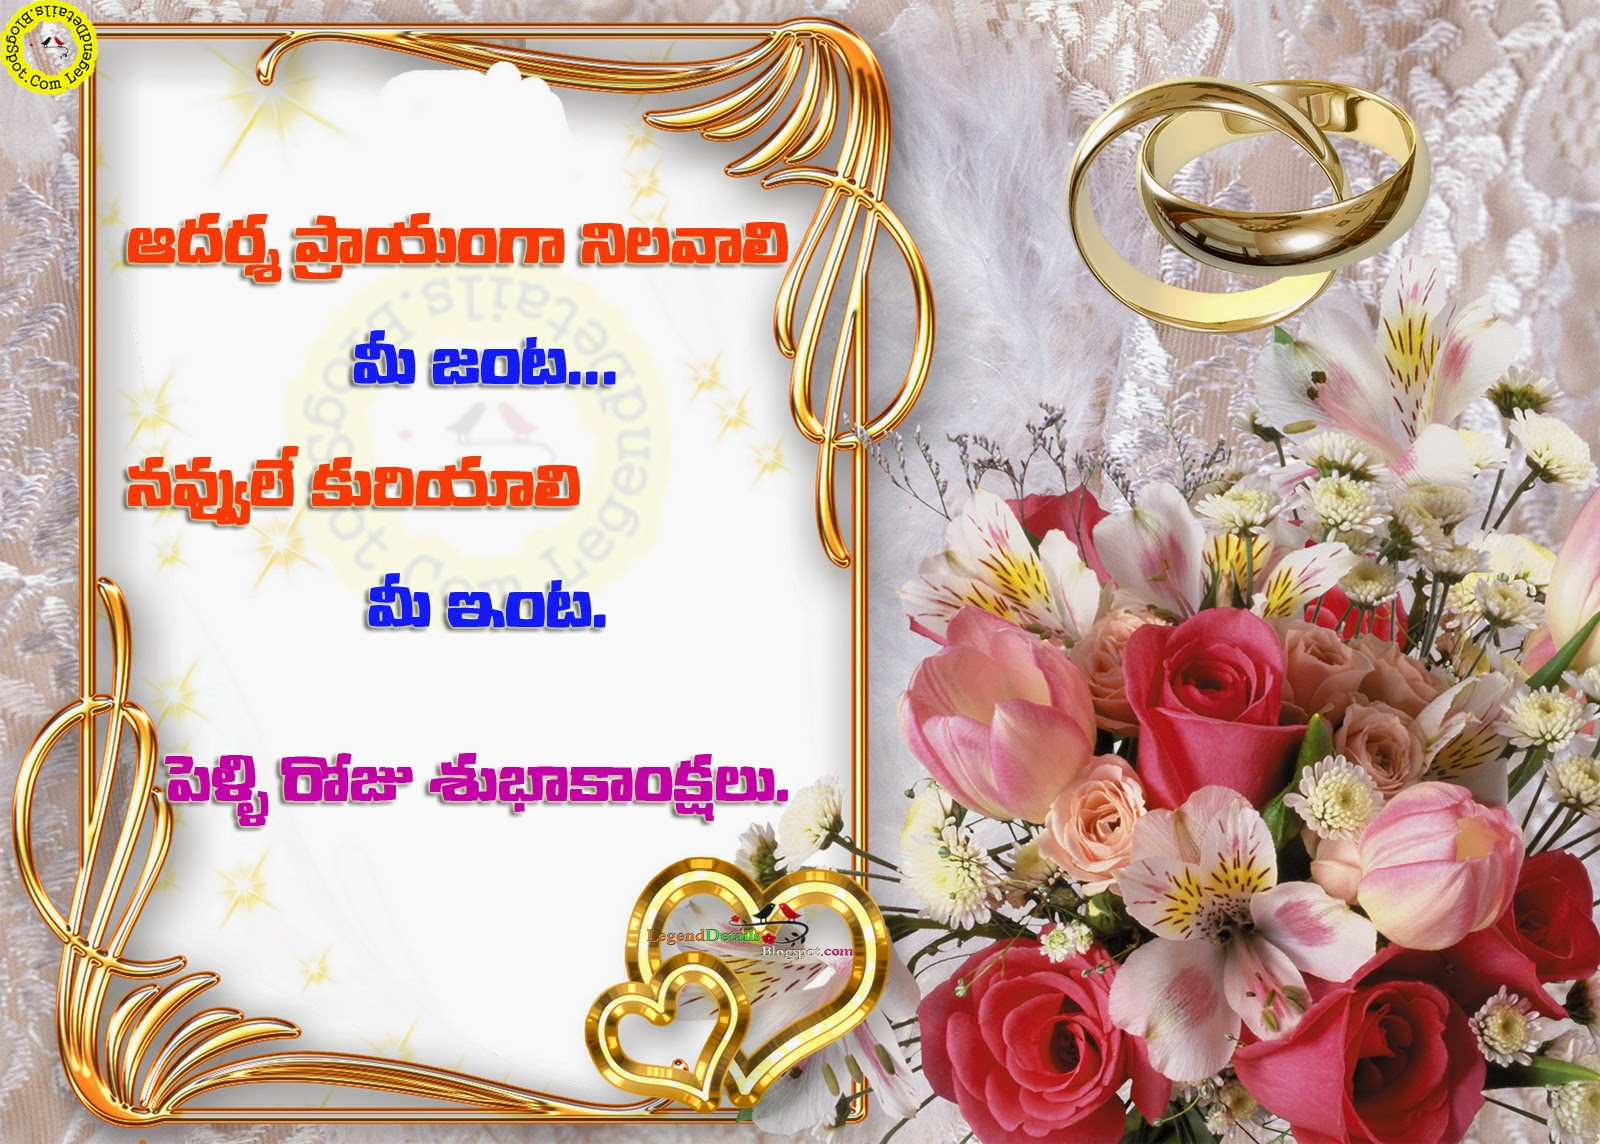 Best telugu marriage anniversary greetings wedding wishes sms best telugu marriage anniversary greetings wishes sms kristyandbryce Gallery